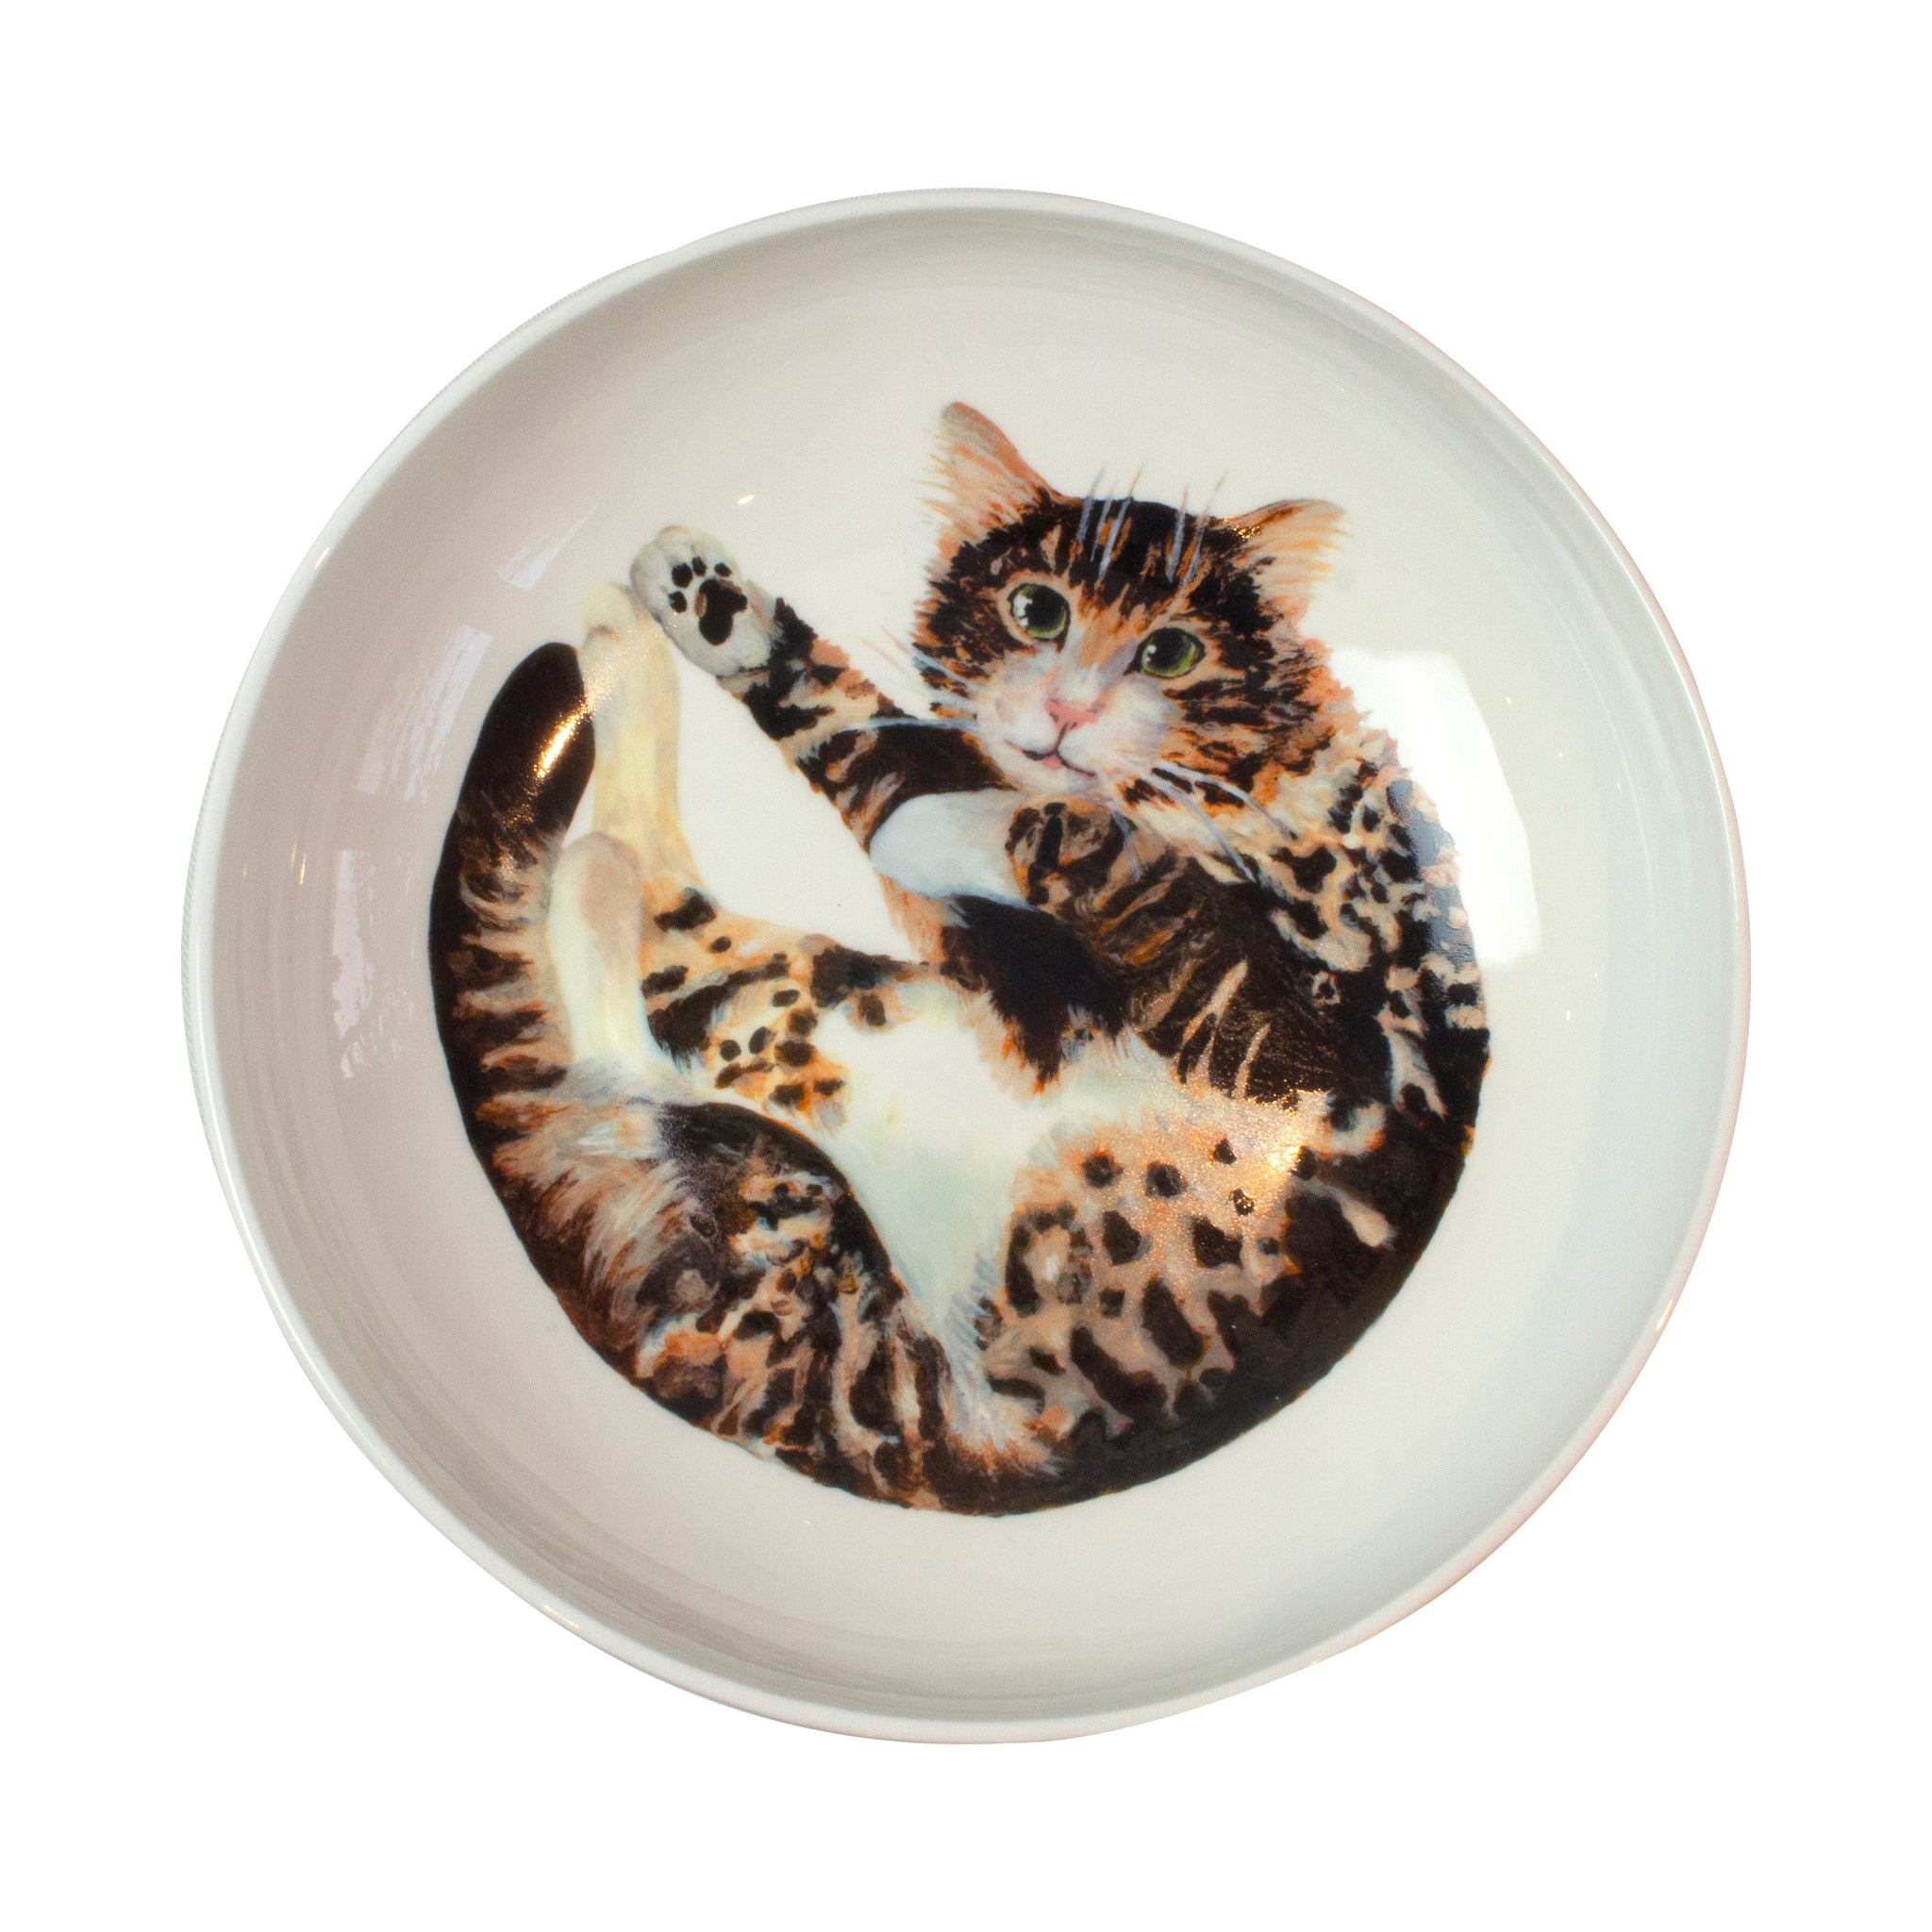 A tabby cat printed on the bottom of a pasta bowl. Aerial view. Catnap Design London.